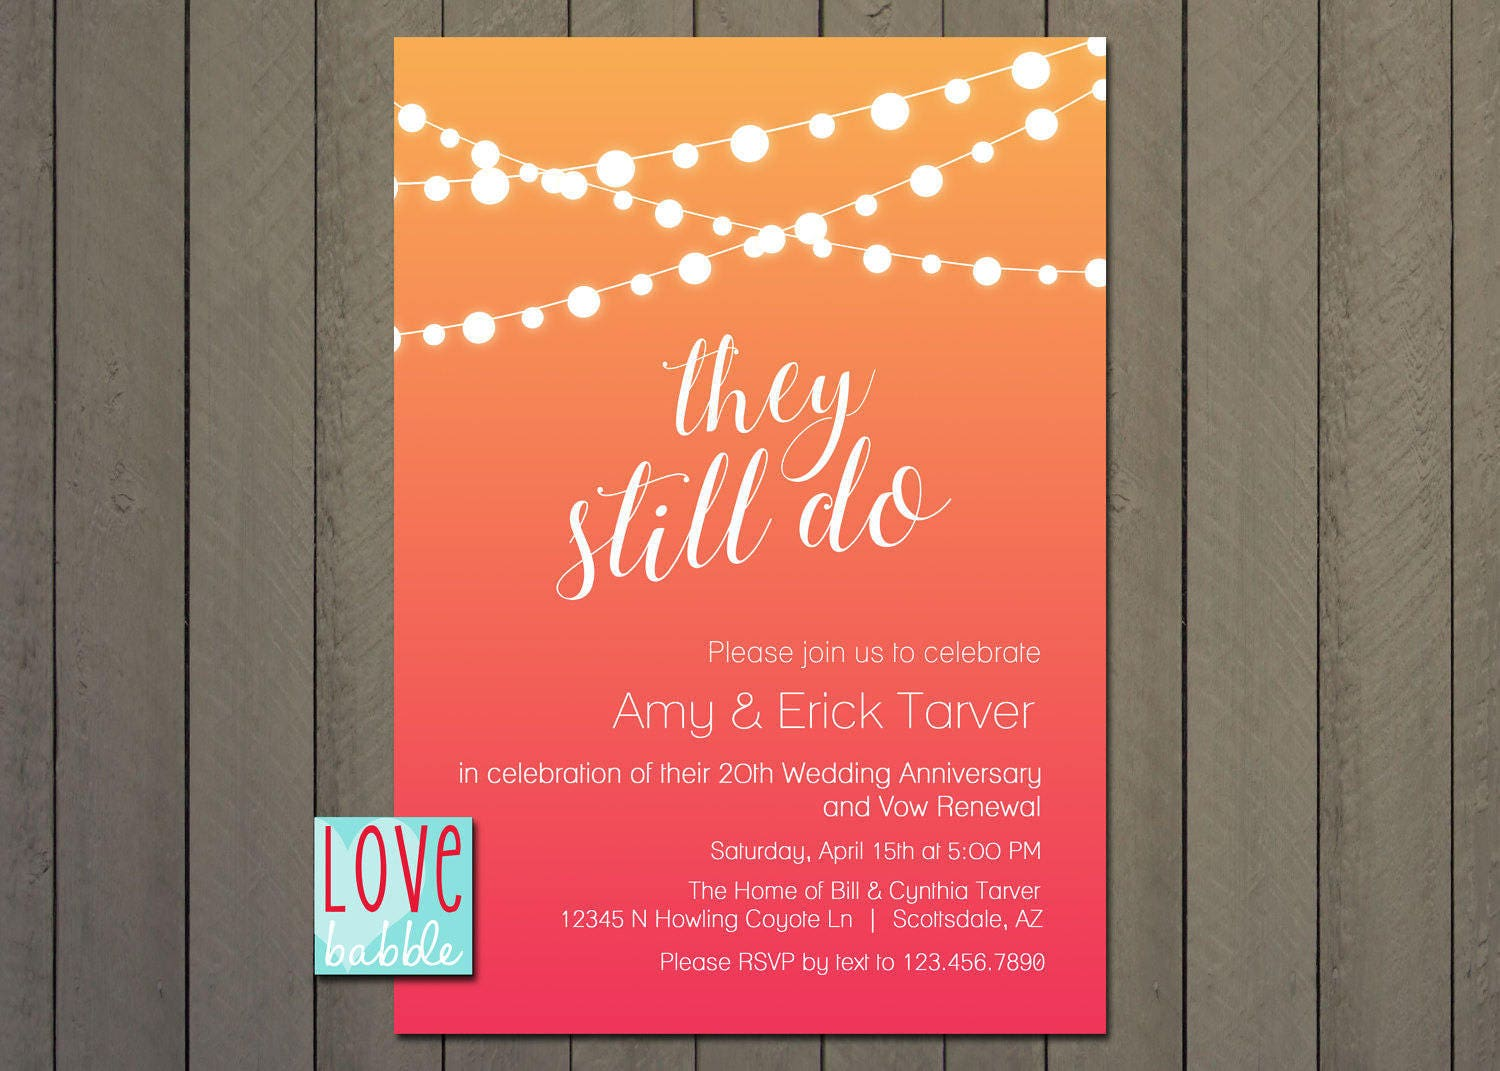 No Regrets Vow Renewal Invitation 60th birthday ideas t